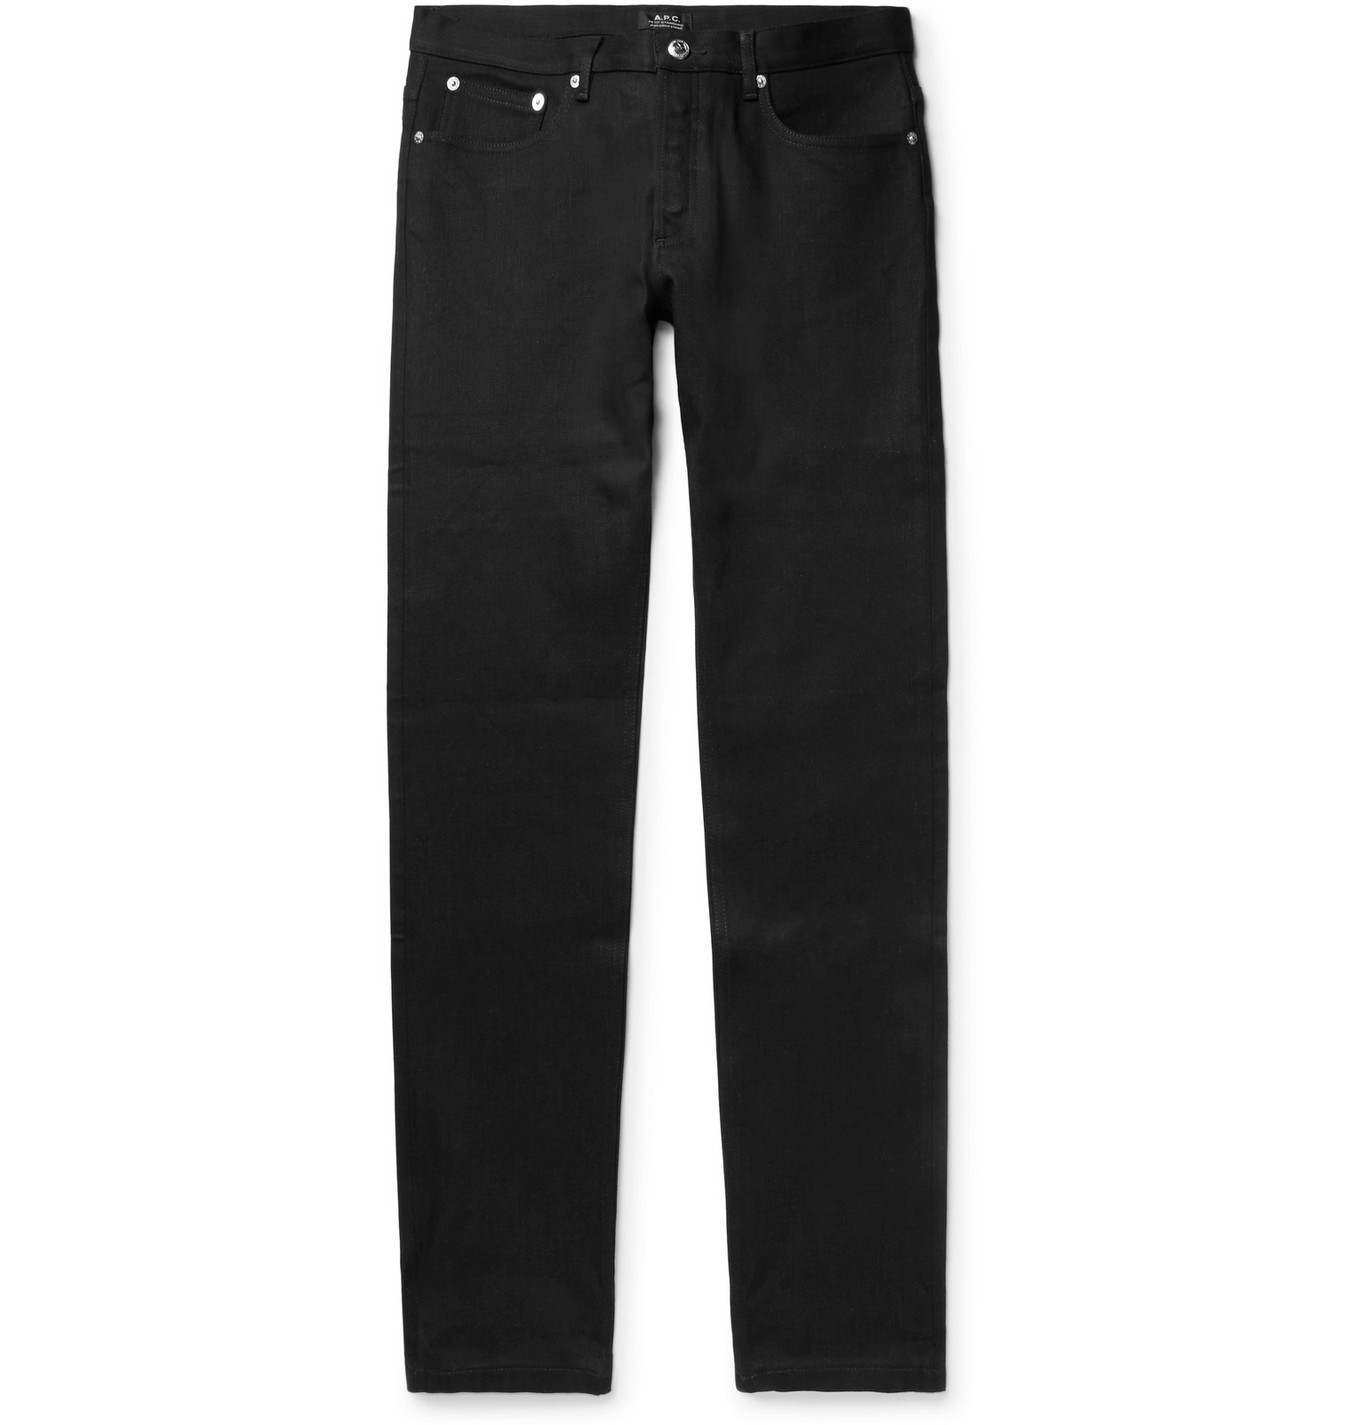 A.P.C. - Petit Standard Slim-fit Stretch-denim Jeans - Black